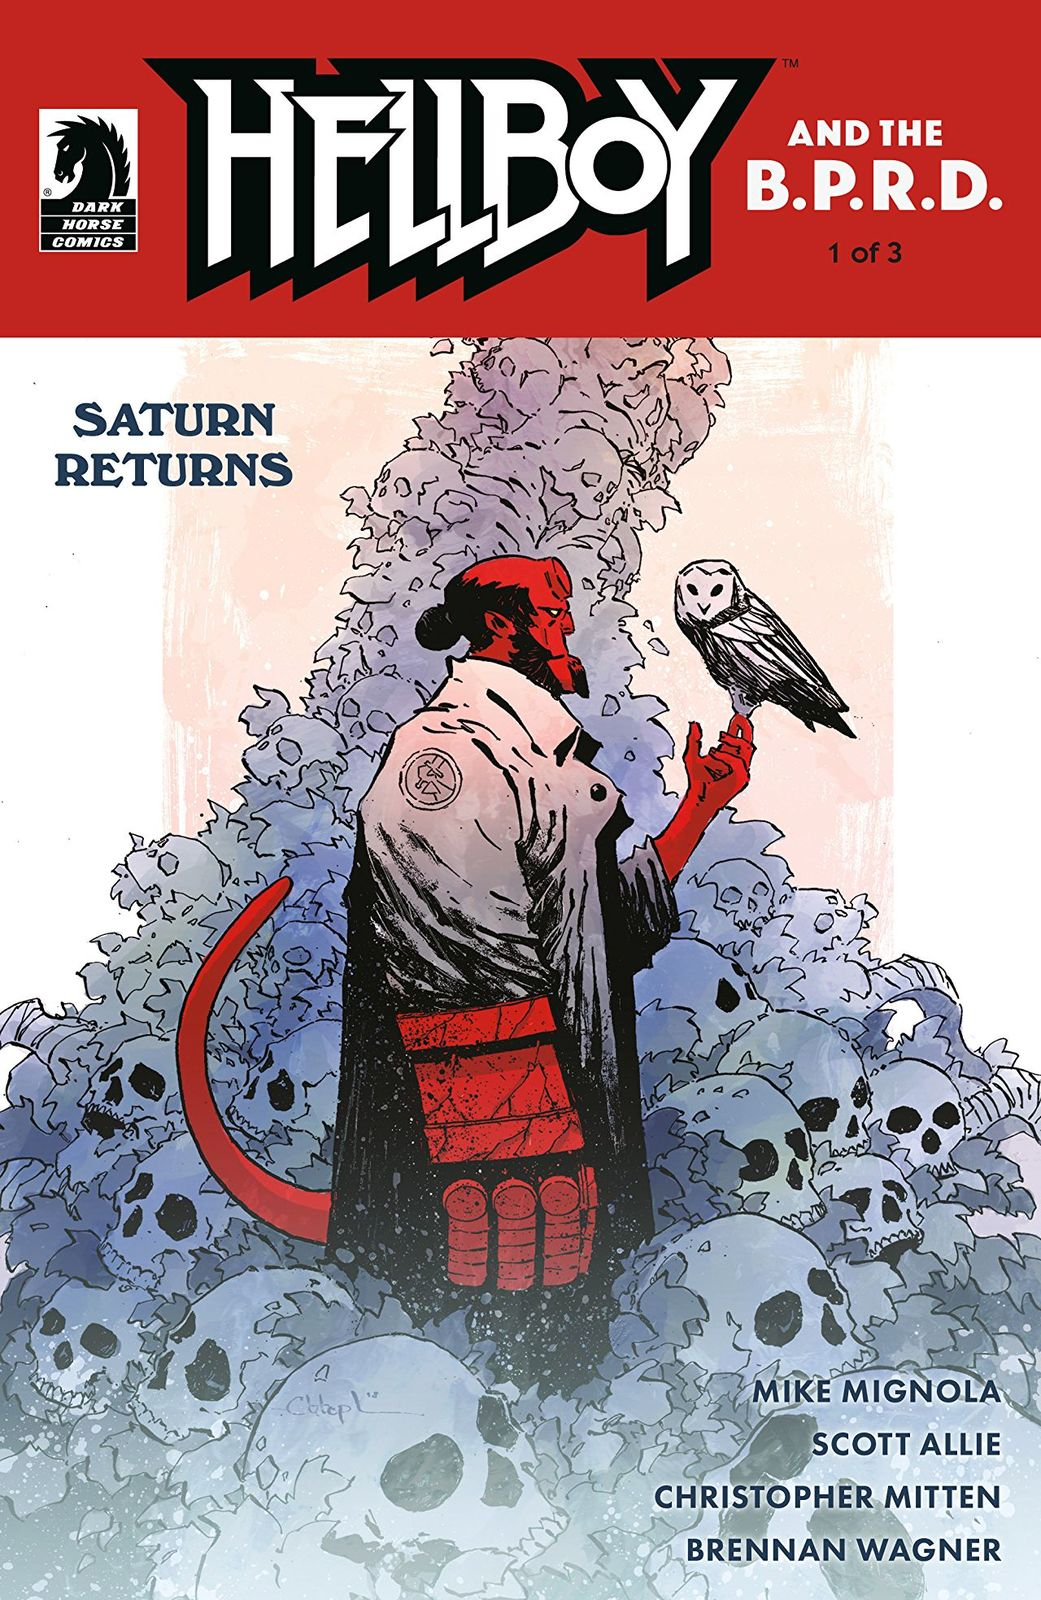 Hellboy and the B.P.R.D. - Saturn Returns #1 image